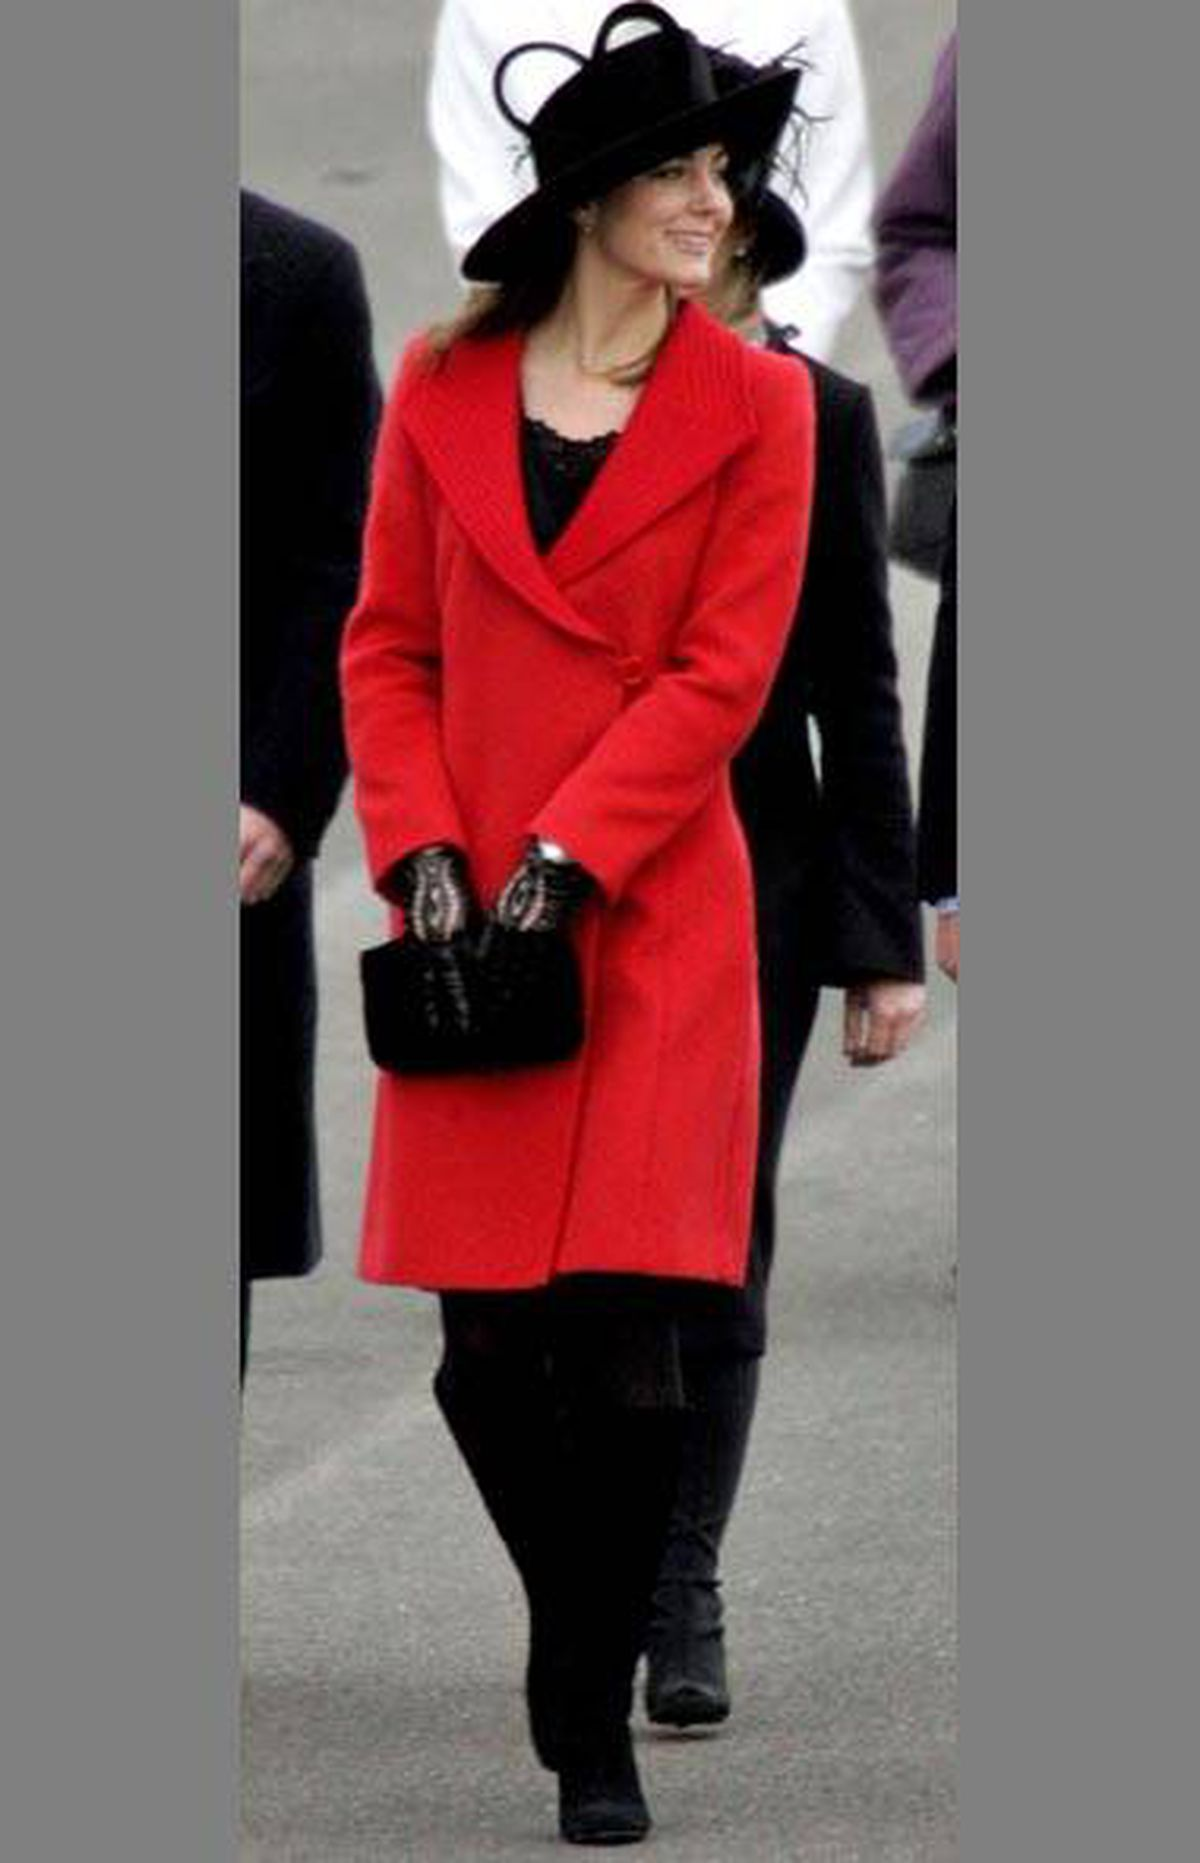 She may opt for understatement over ostentatious, but it's never boring. Take this slick, structured red coat: It reads more cool than calculated.